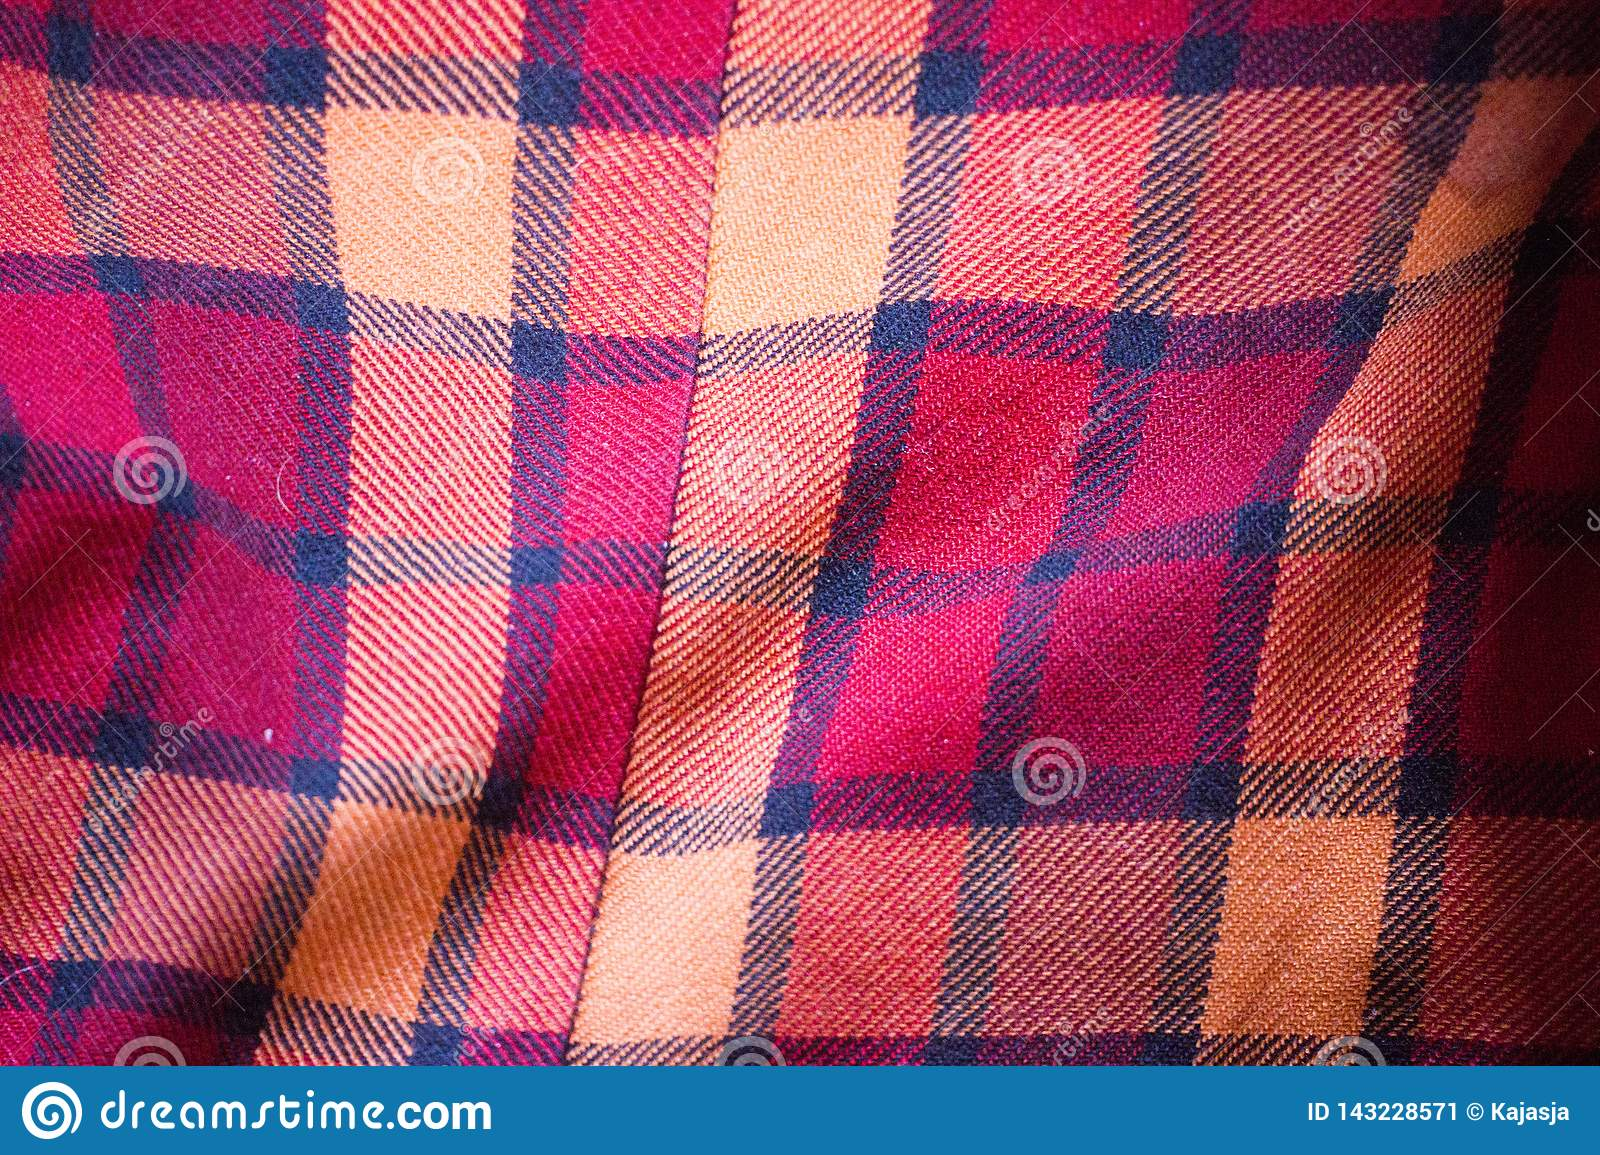 The texture of the red wool plaid fabric